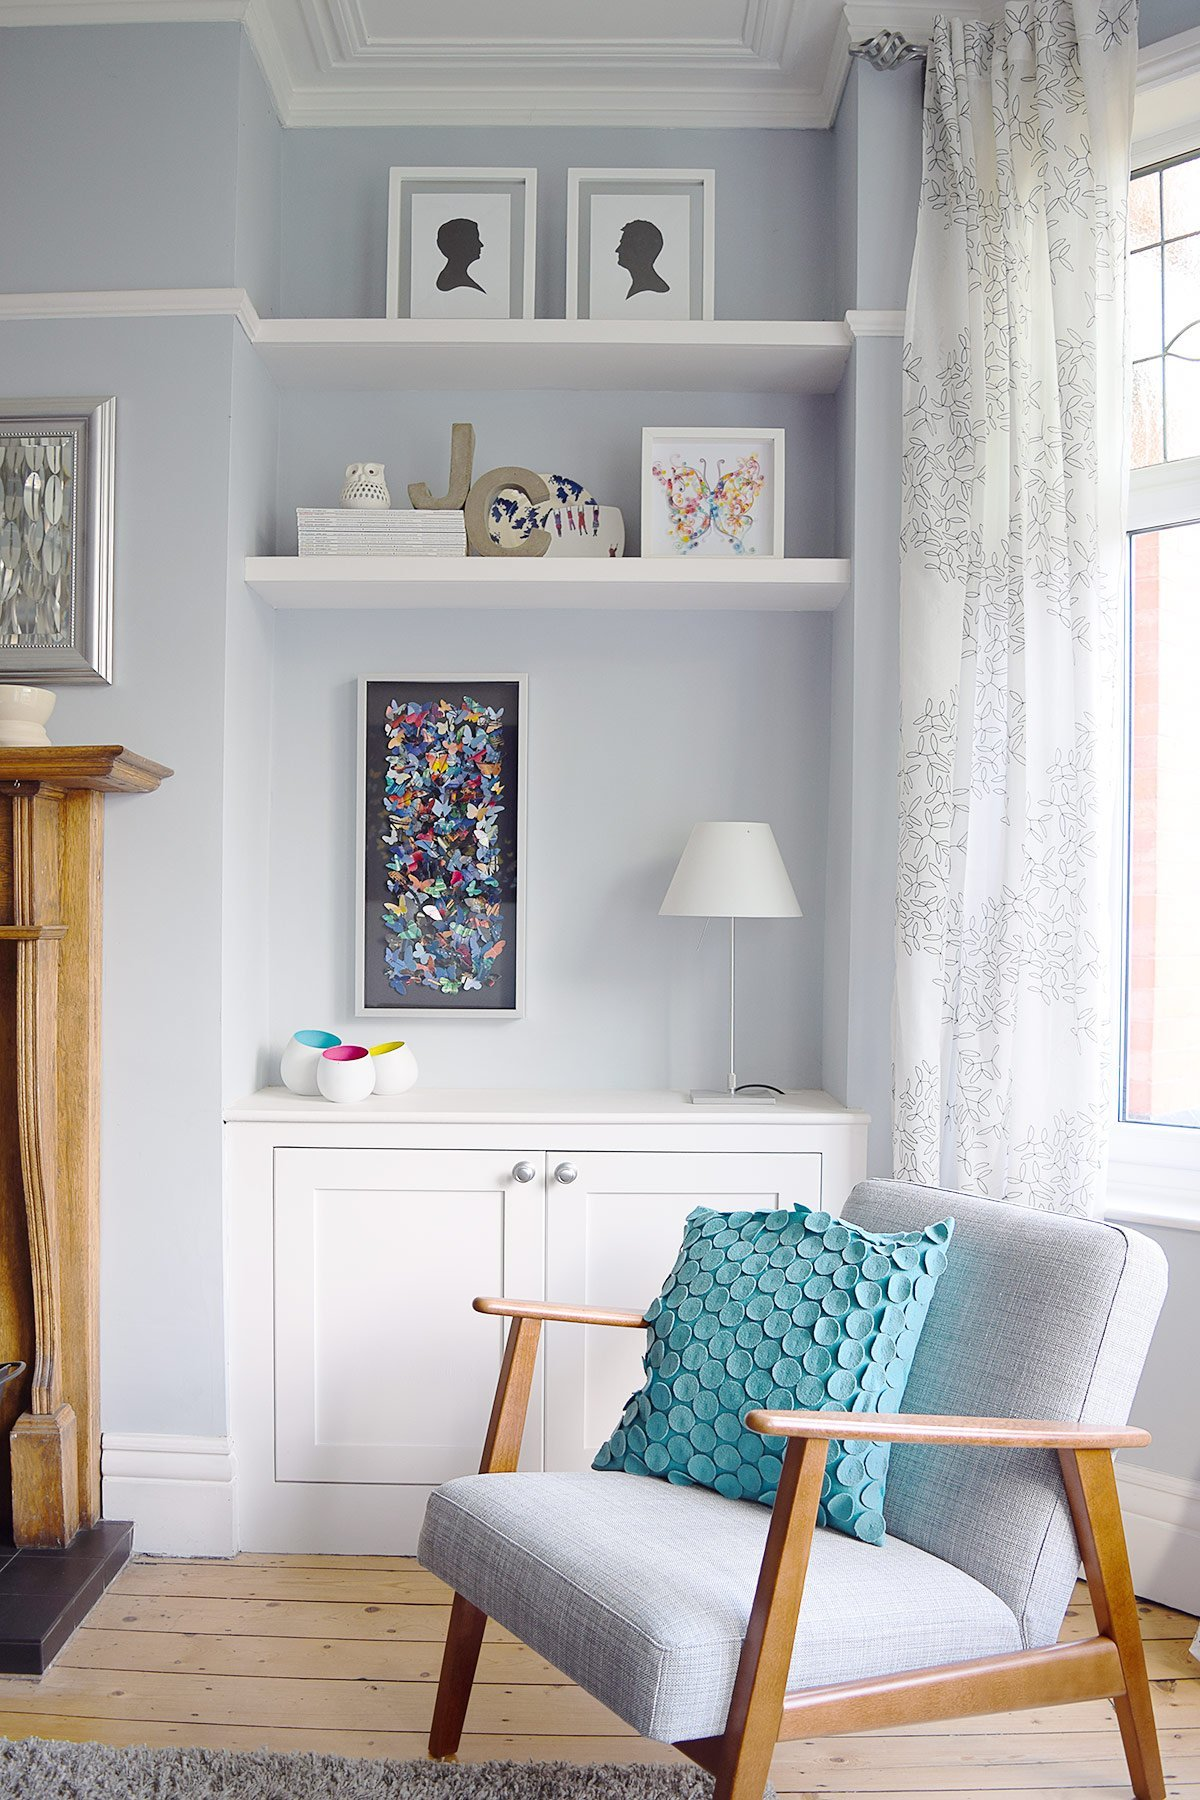 Living Room with Blue Grey Walls and Built-In Alcove Cupboards | Little House On The Corner